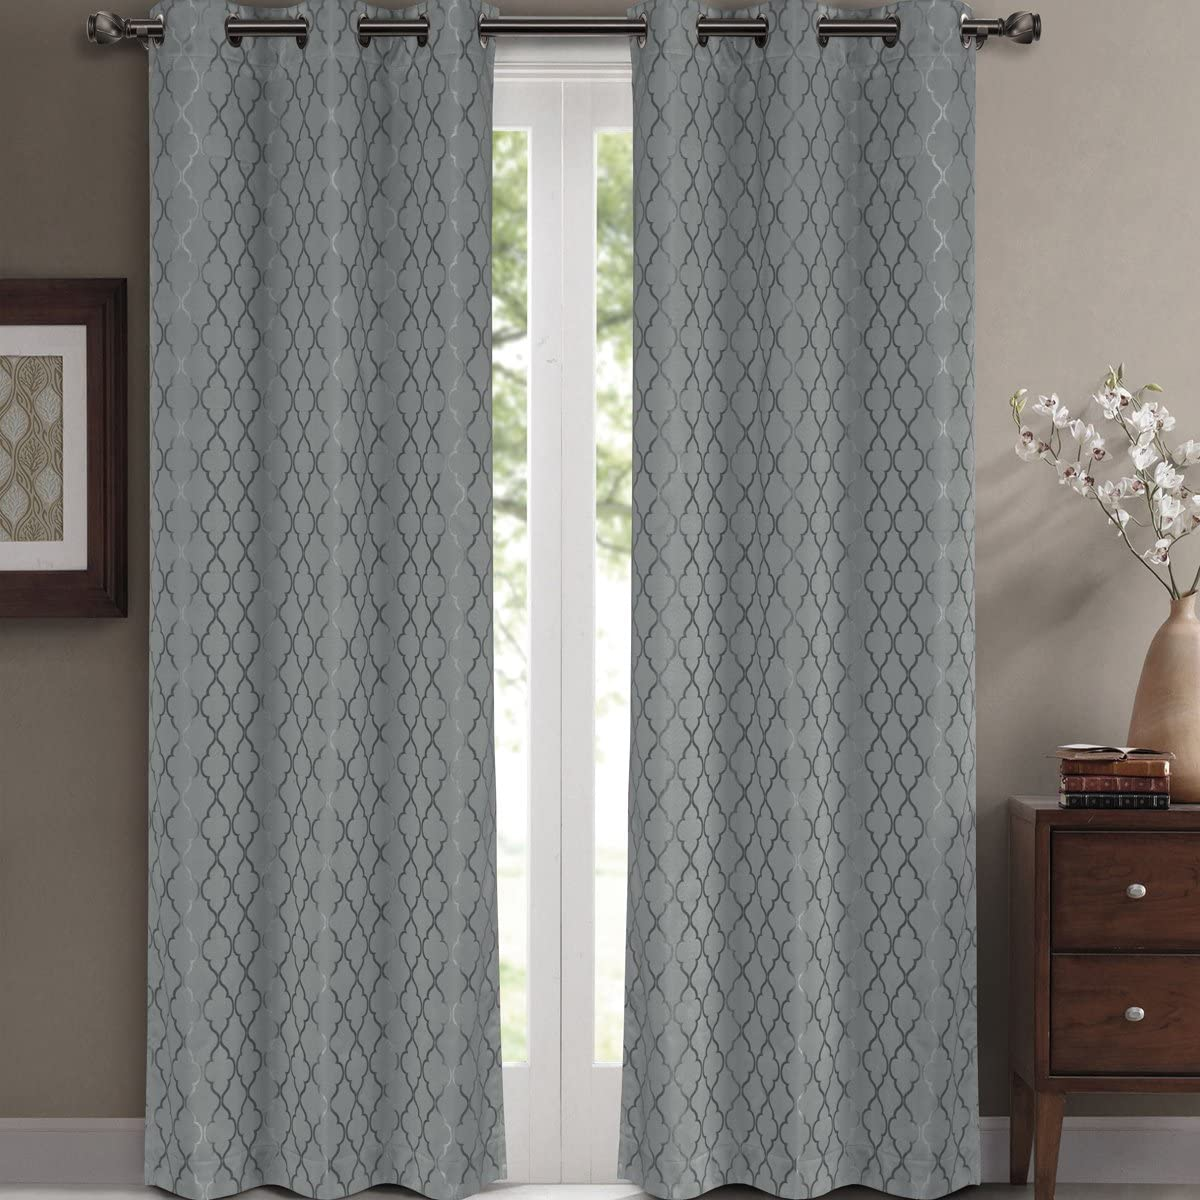 Willow Jacquard Gray Grommet Blackout Window Curtain Drapes, Pair/Set of 2 Panels, 42x108 inches Each, by Royal Hotel